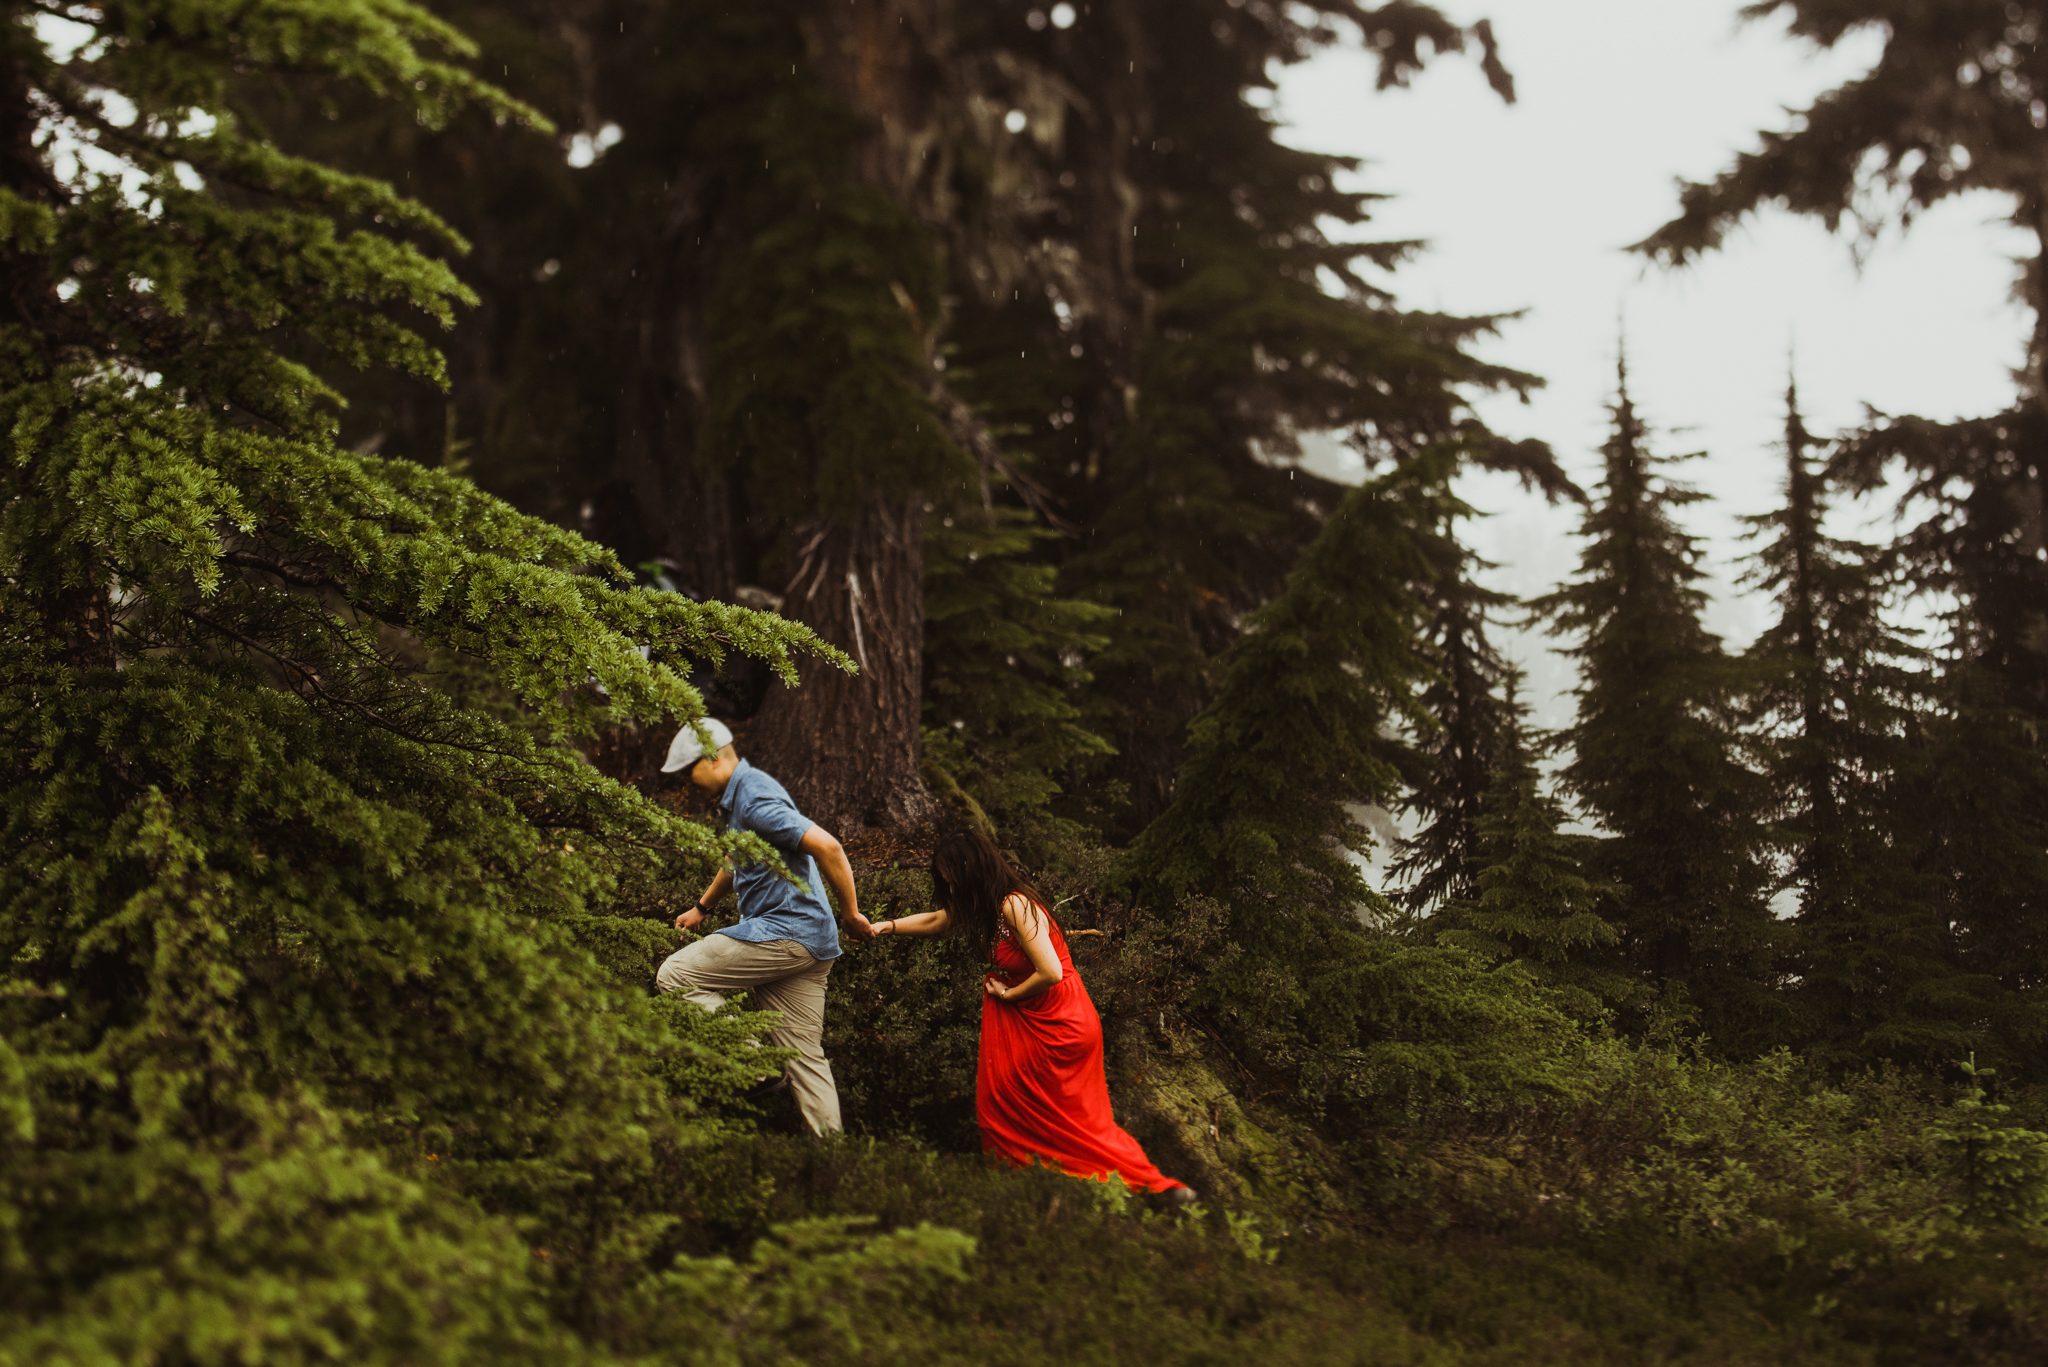 ©Isaiah-&-Taylor-Photography---Hidden-Lake-Cascade-Mountains-Engagement,-Washington-085.jpg